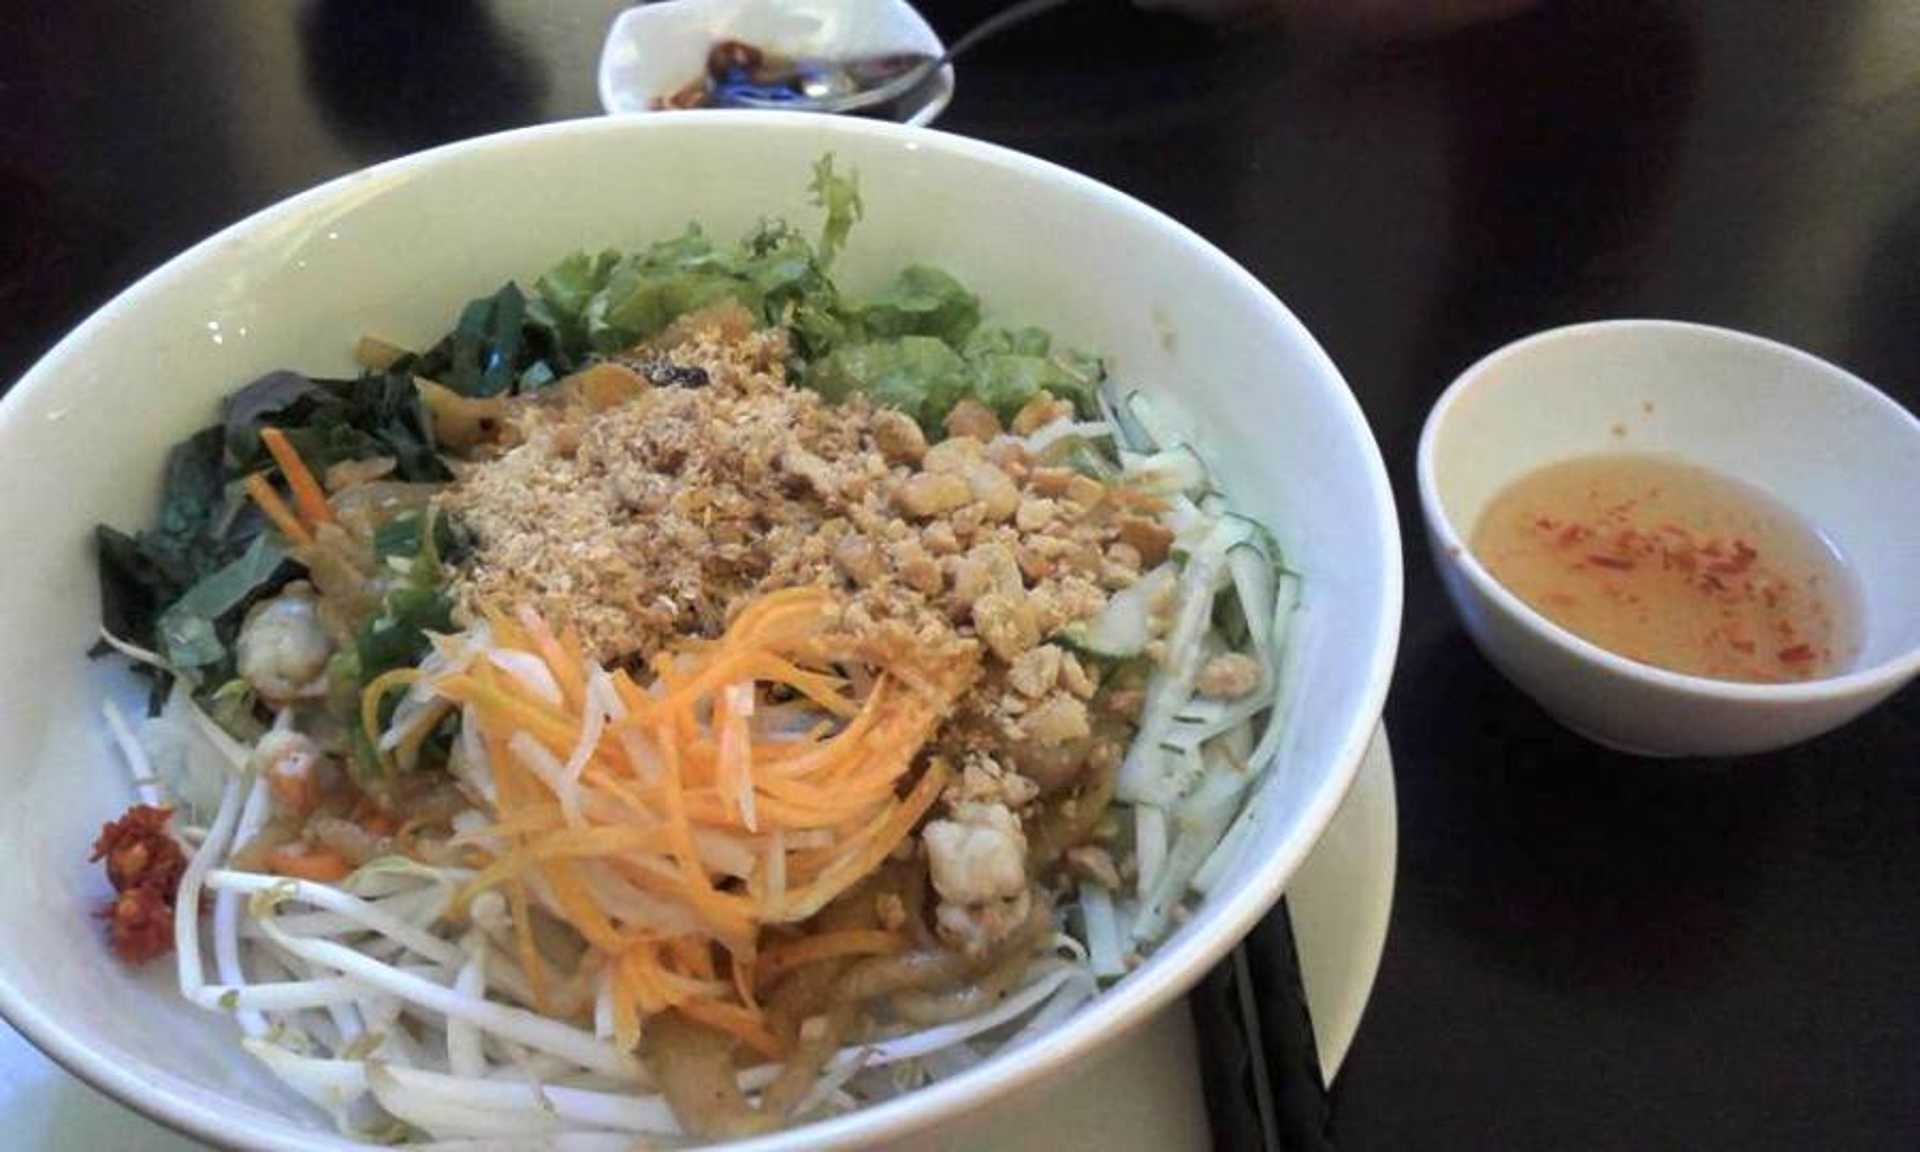 Noodle treat with a side of tangy dressing